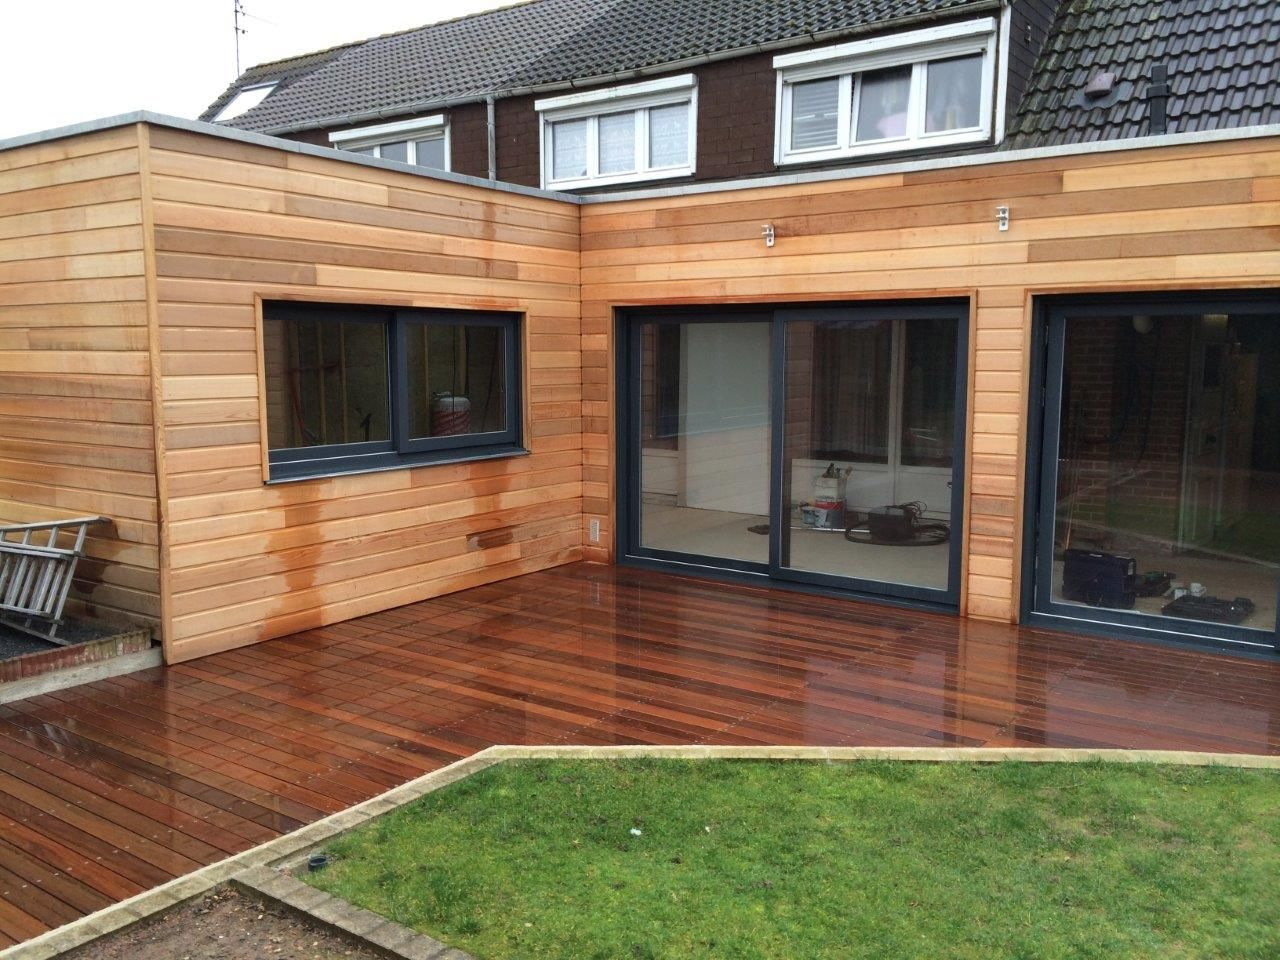 Terrasse Red Cedar Extention Bardage Red Cedar Et Terrasse Sur Plots | Maison